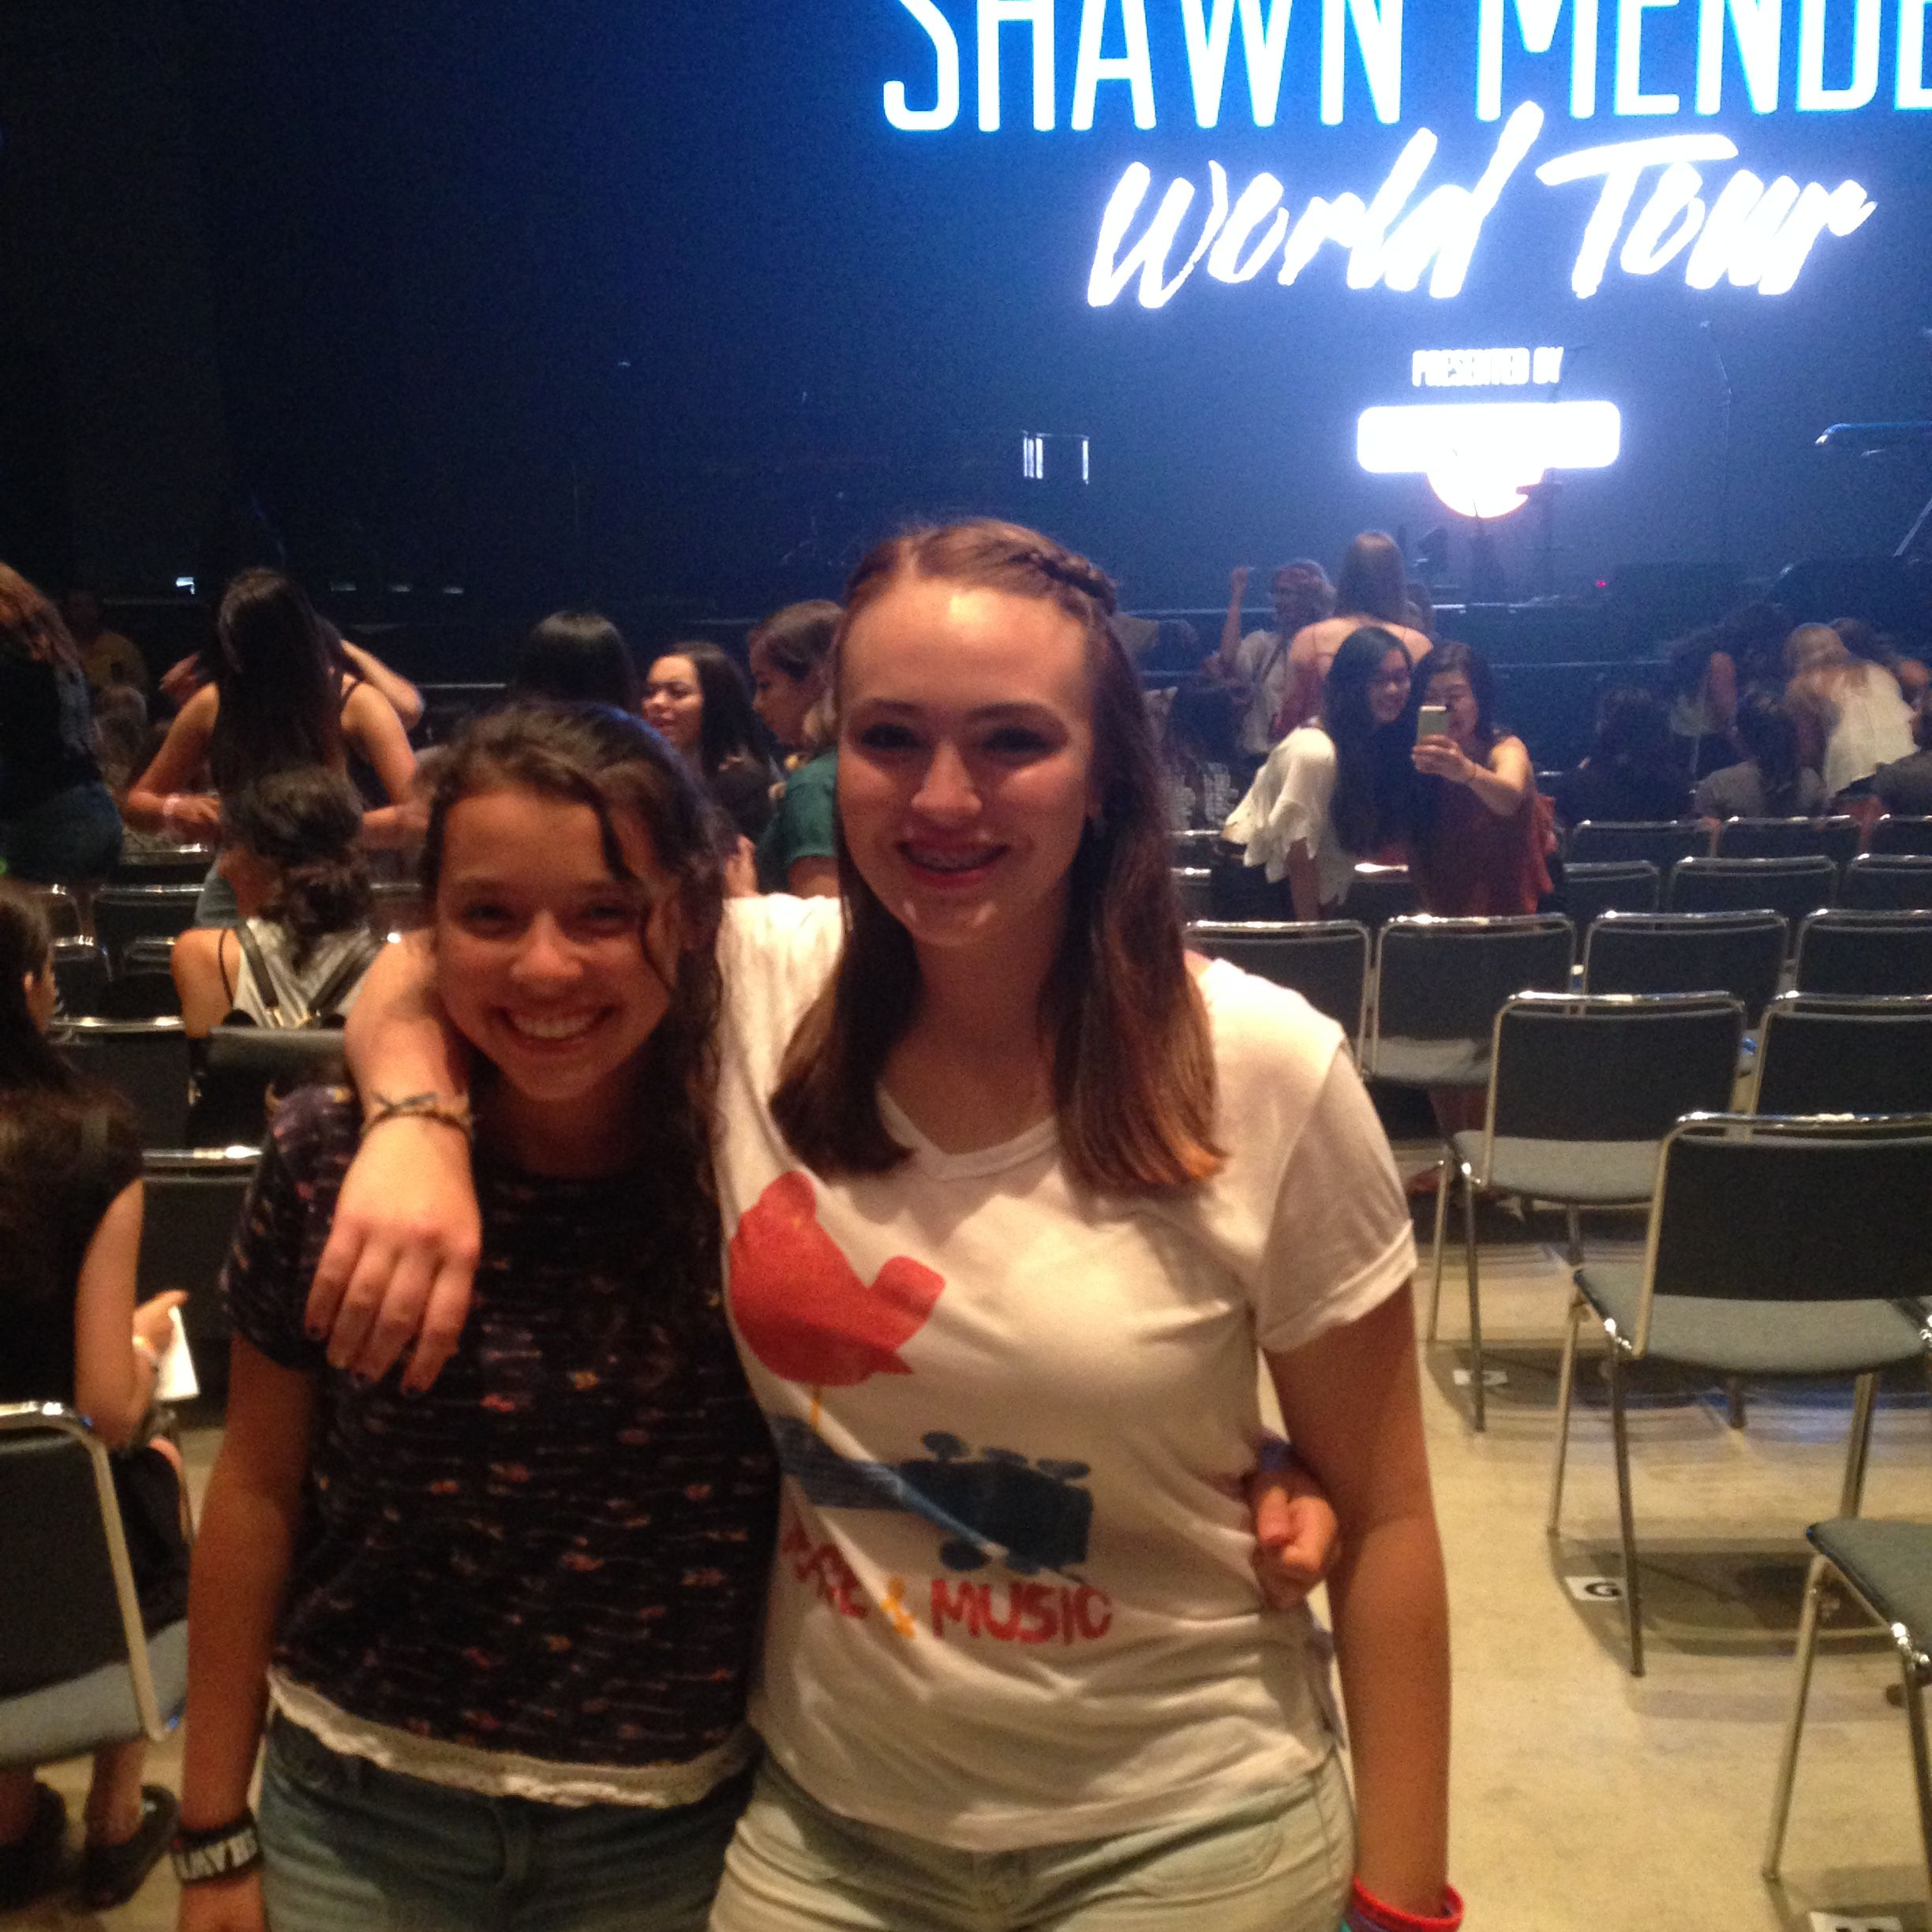 Was from first Shawn Mendes concert so proud of how far he's come